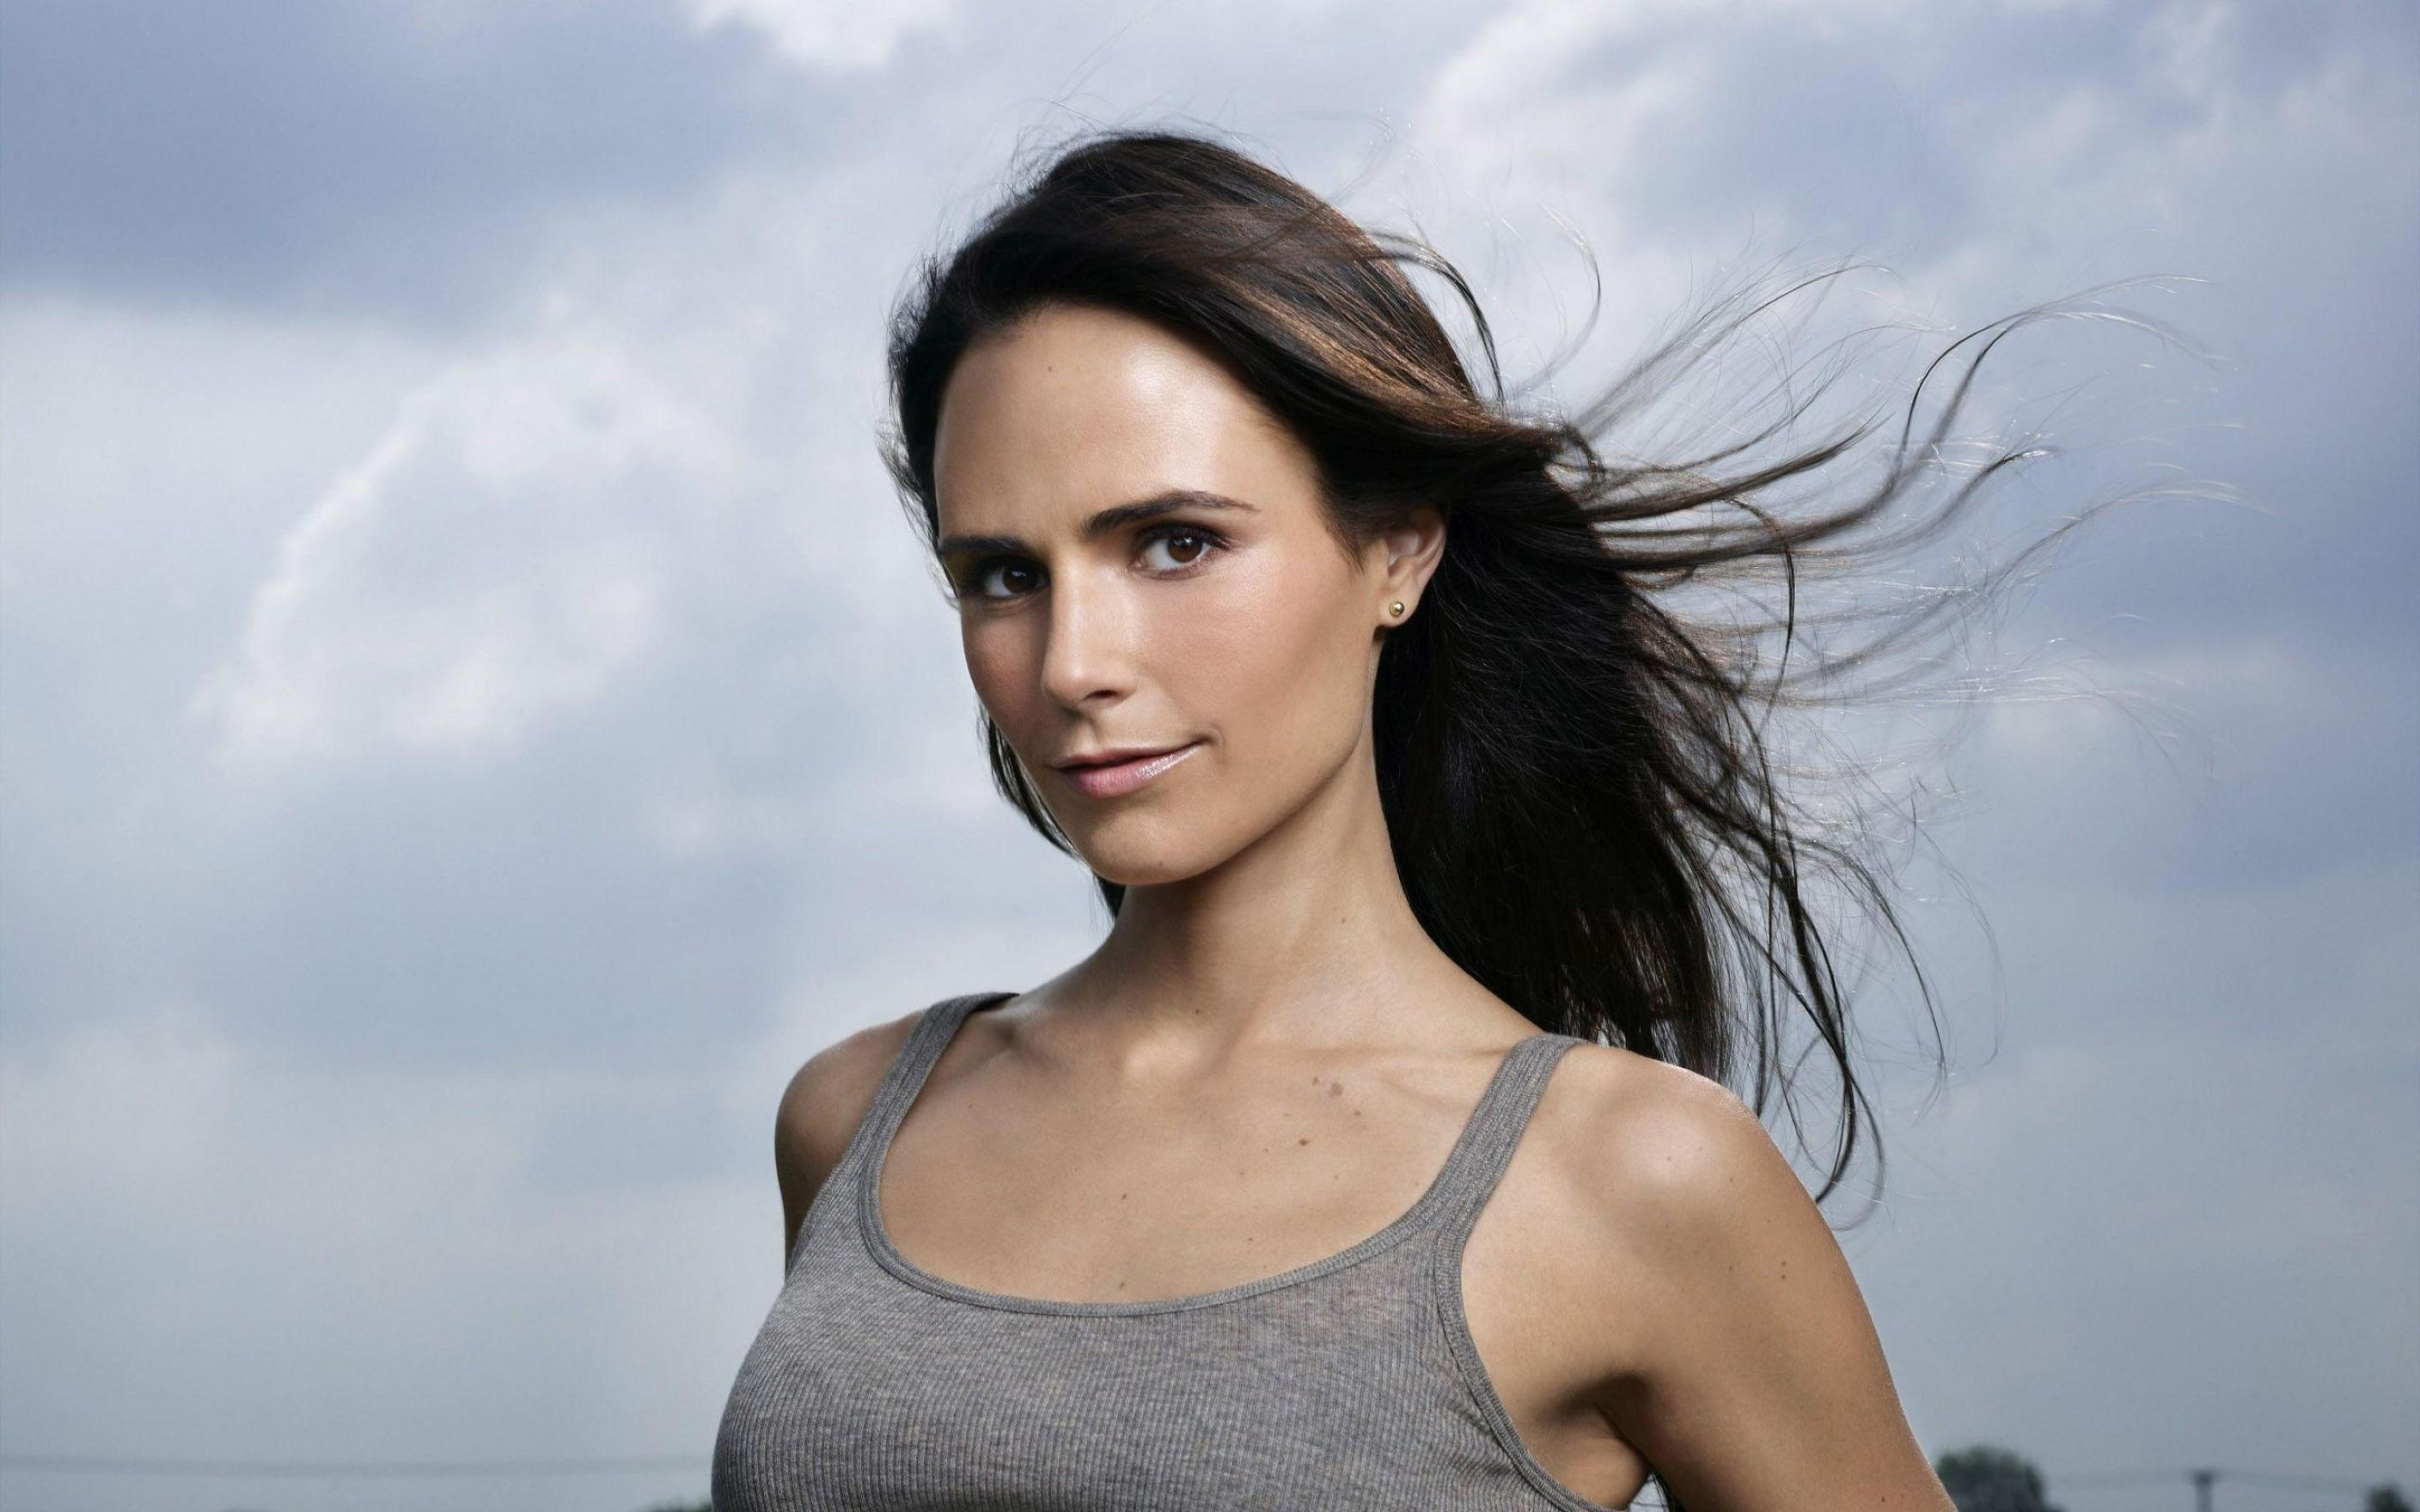 jordana brewster with her hair in the wind wallpaper: desktop hd